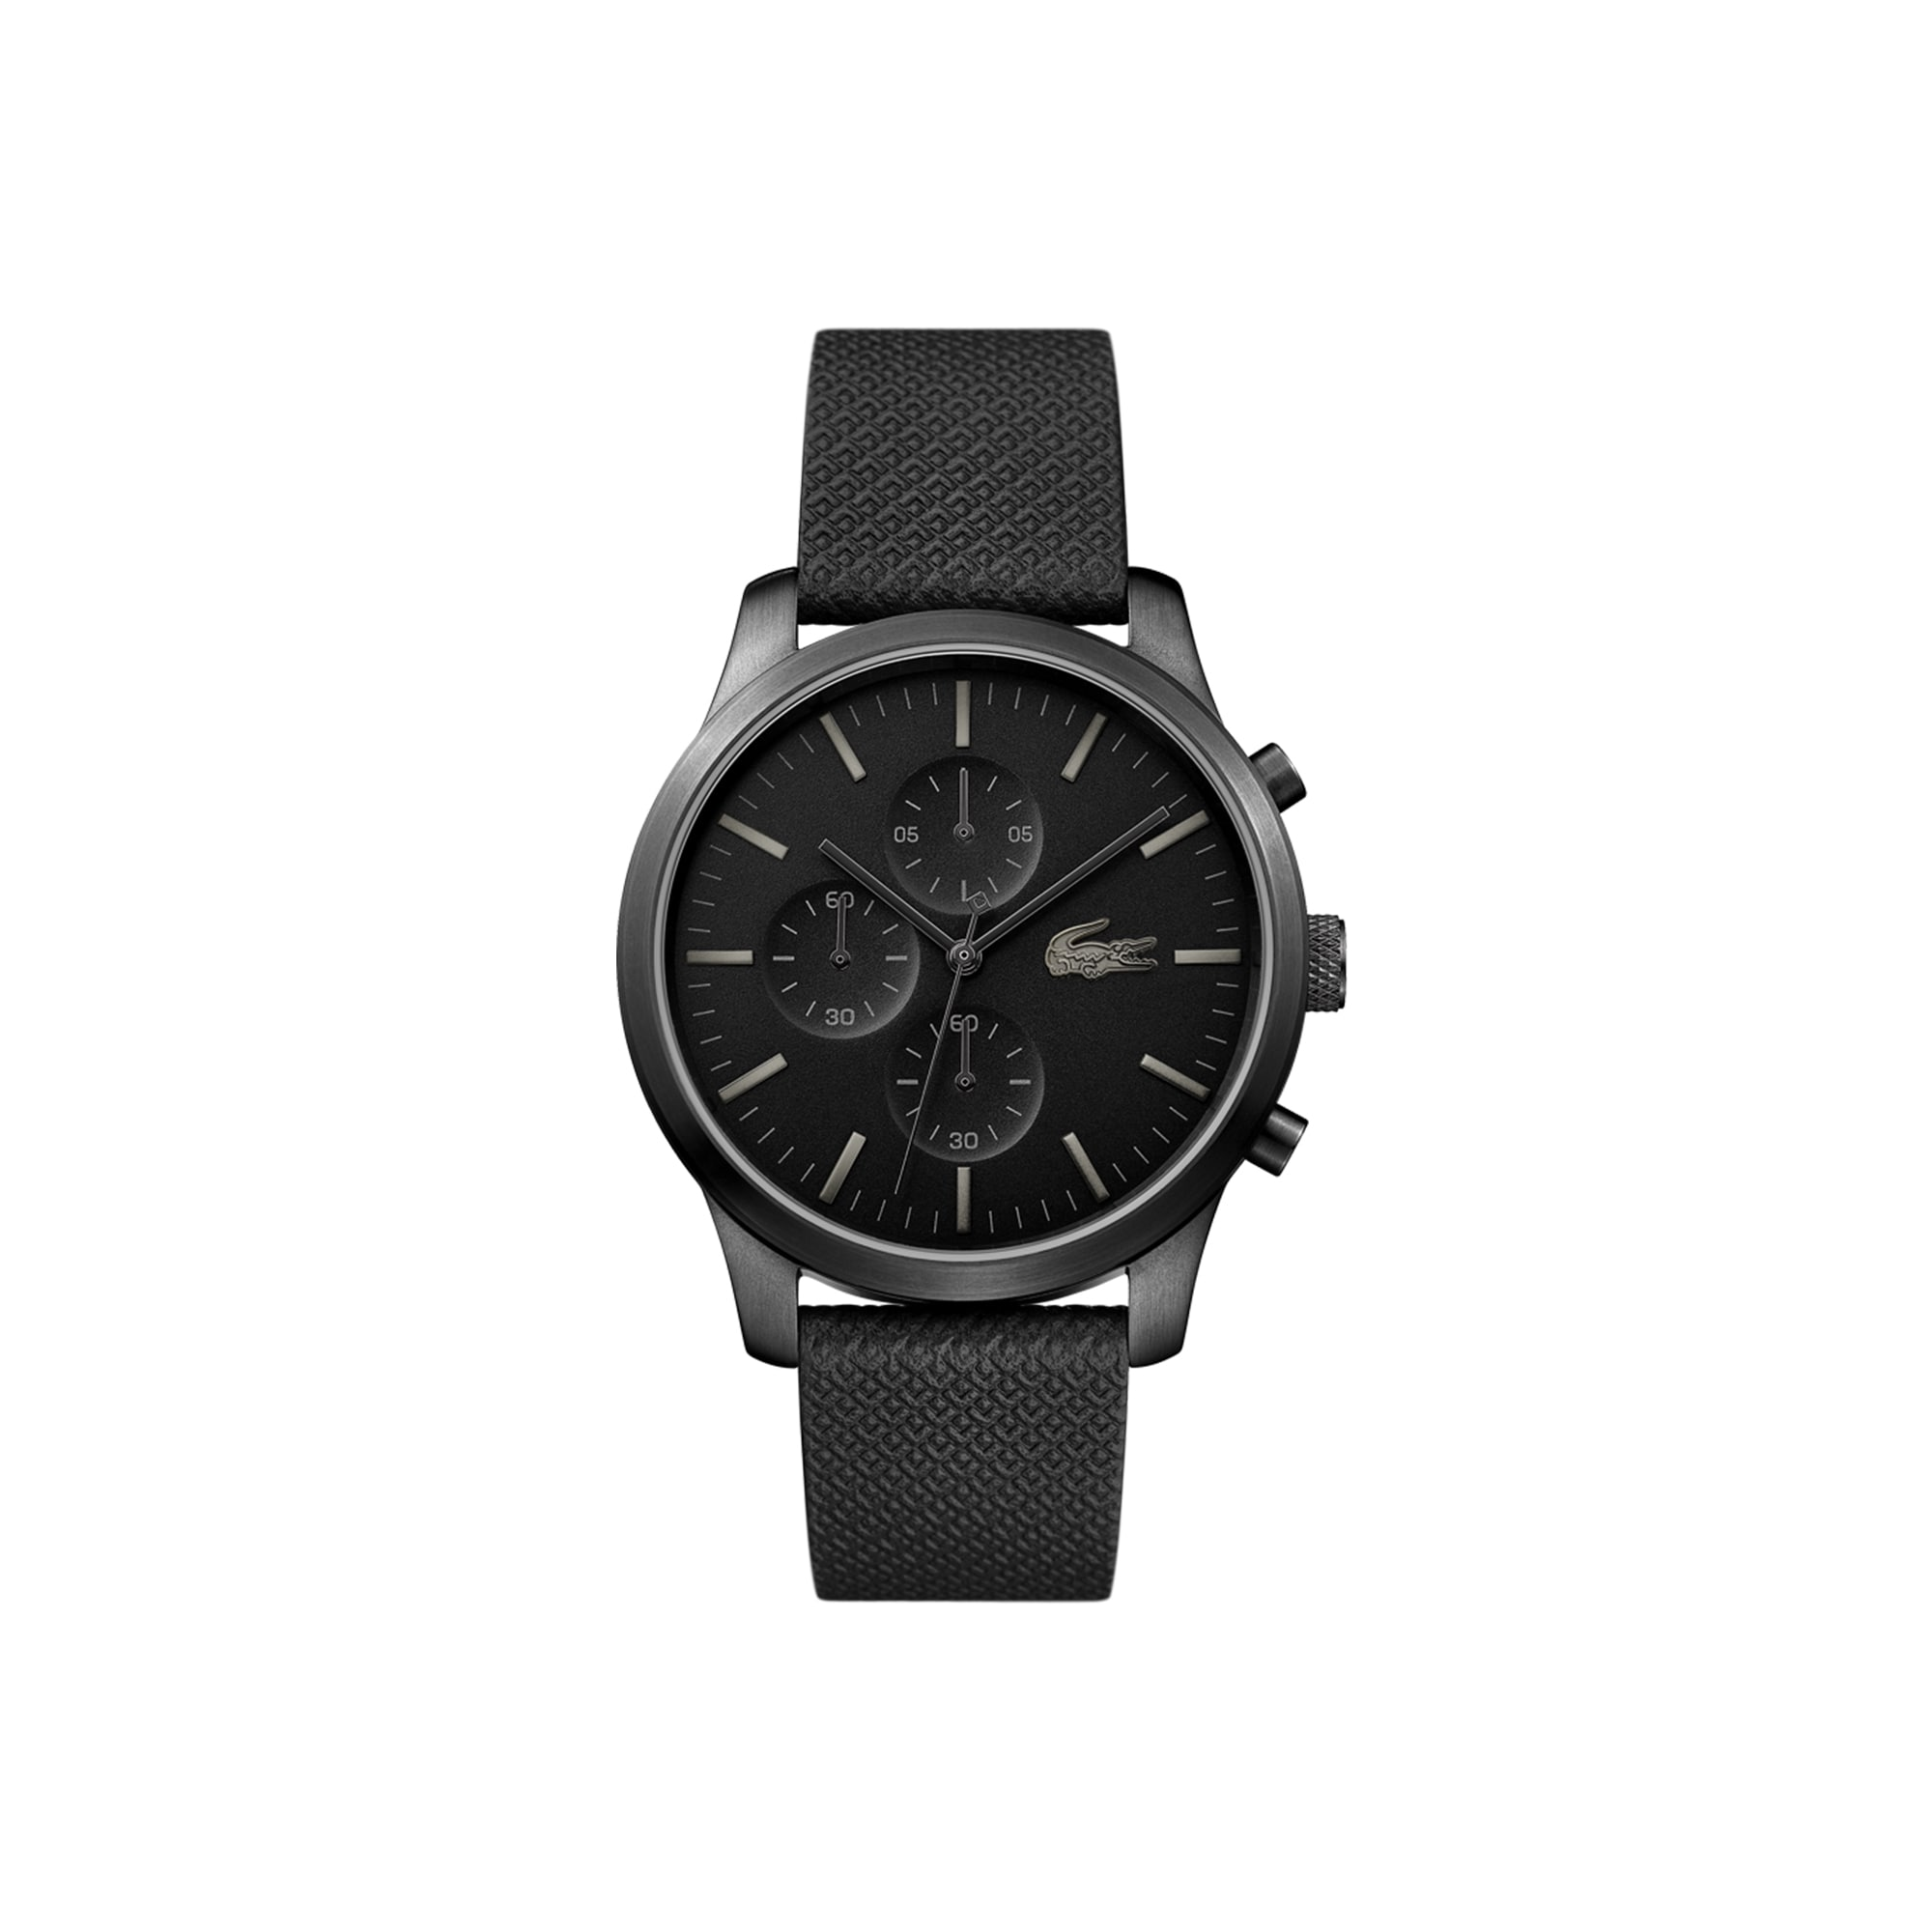 Men's Lacoste 12.12 Chronograph Watch 85th Anniversary with Black Embossed Leather Strap